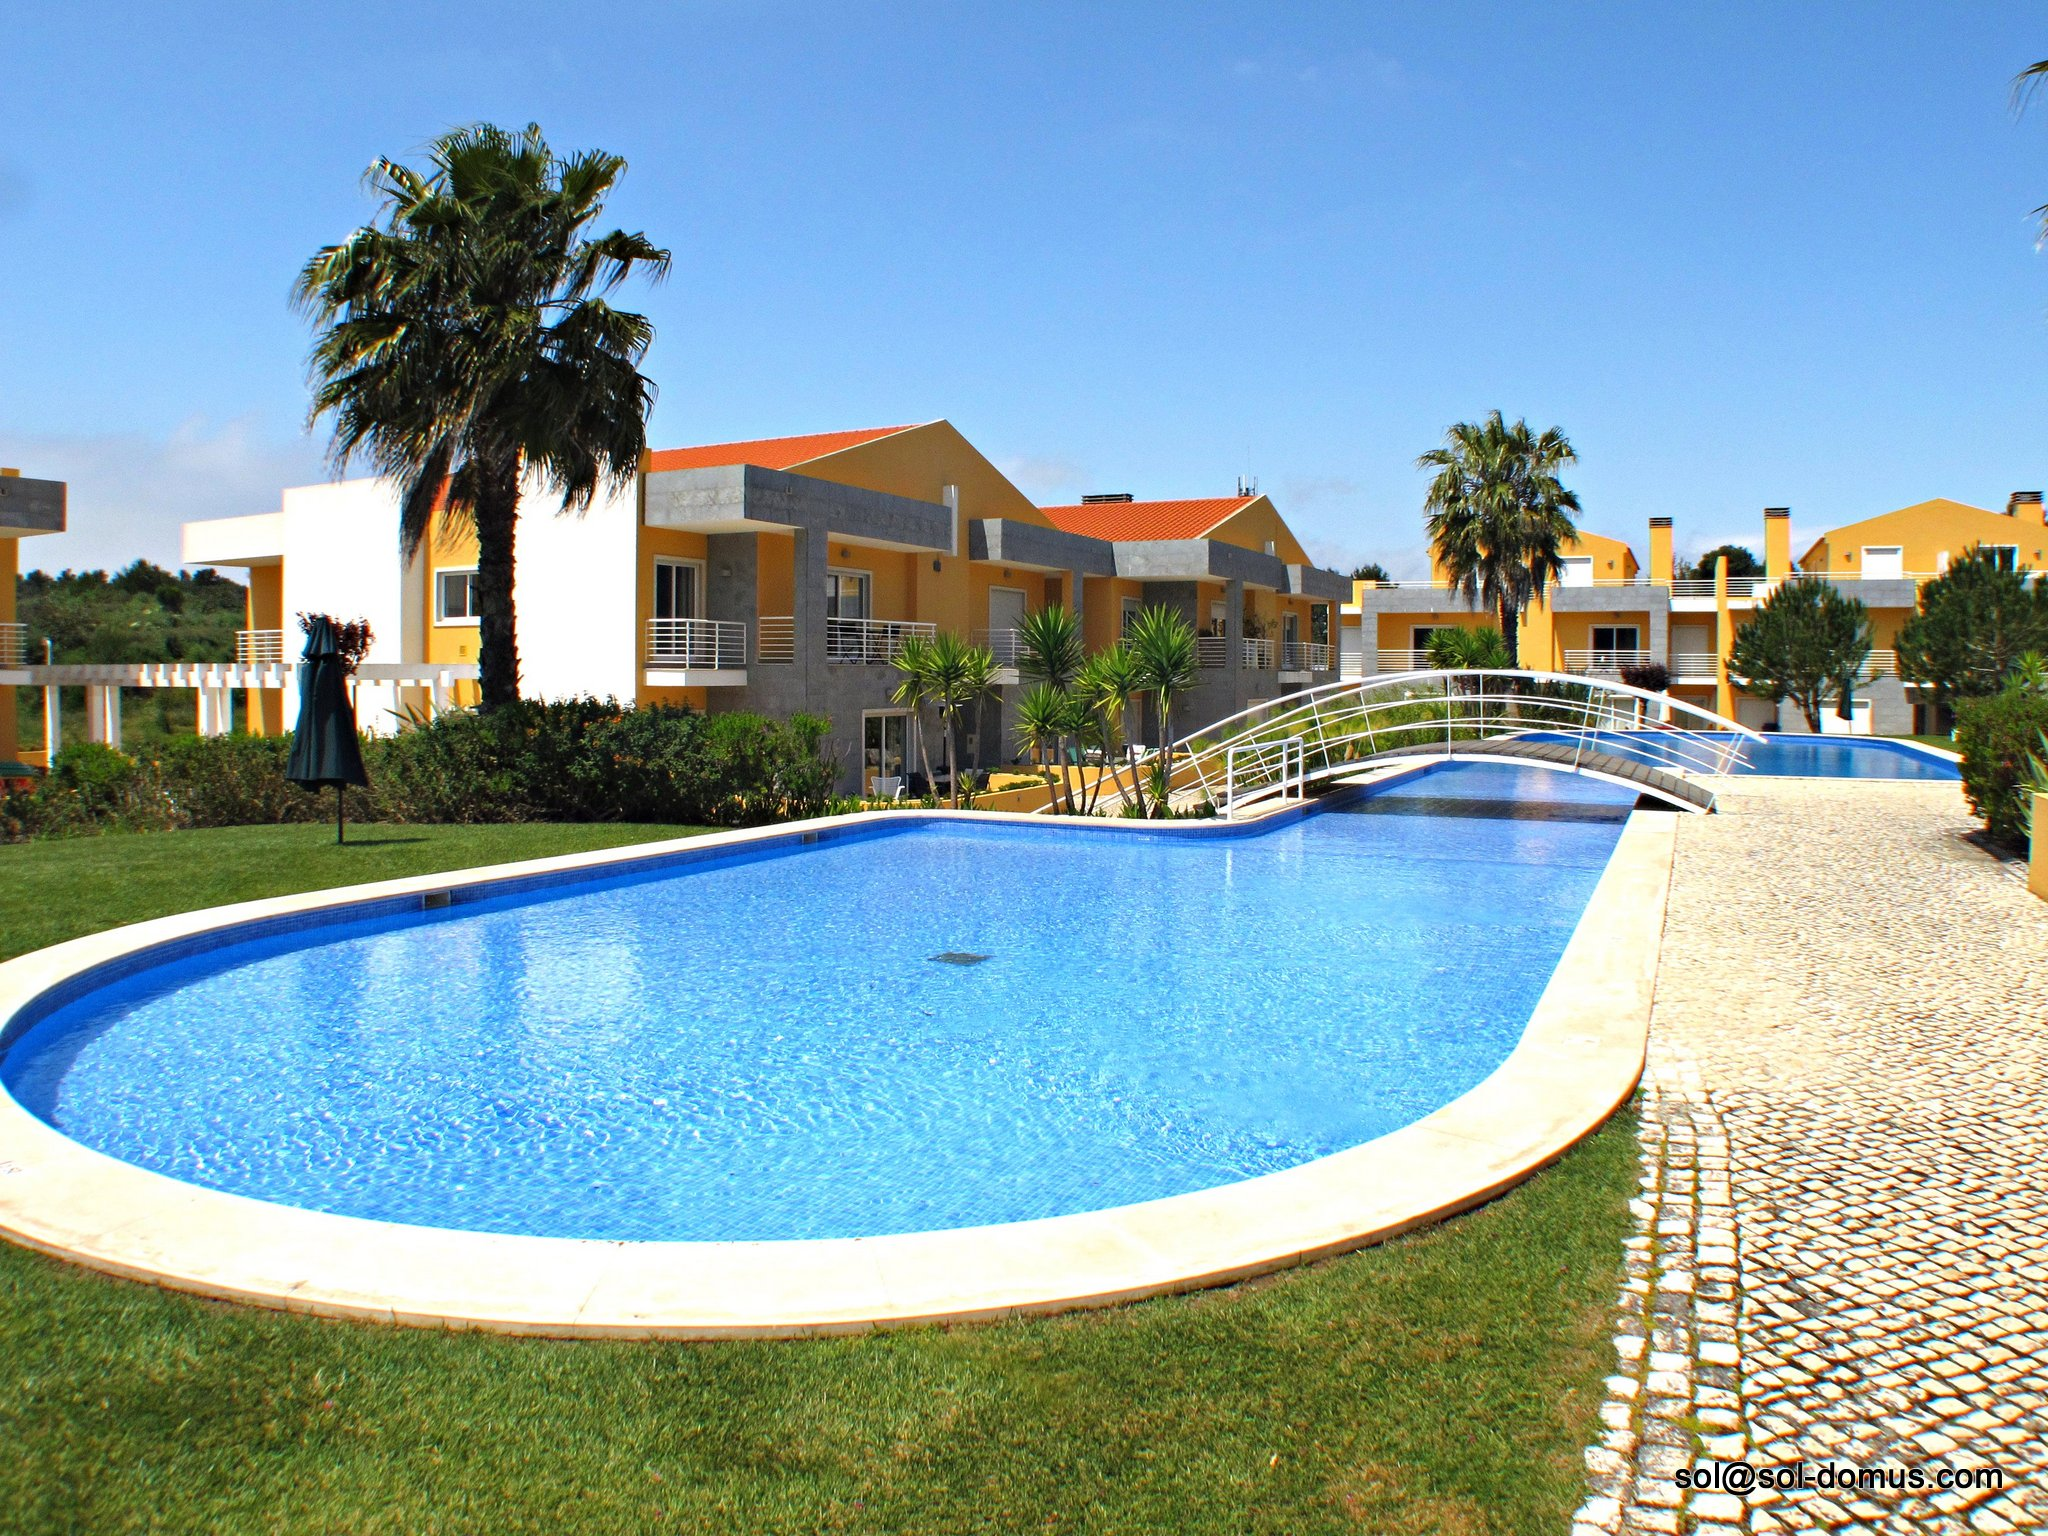 Cascais Garden Apartment 2 – In beautiful luxury condominium with large pools in Cascais